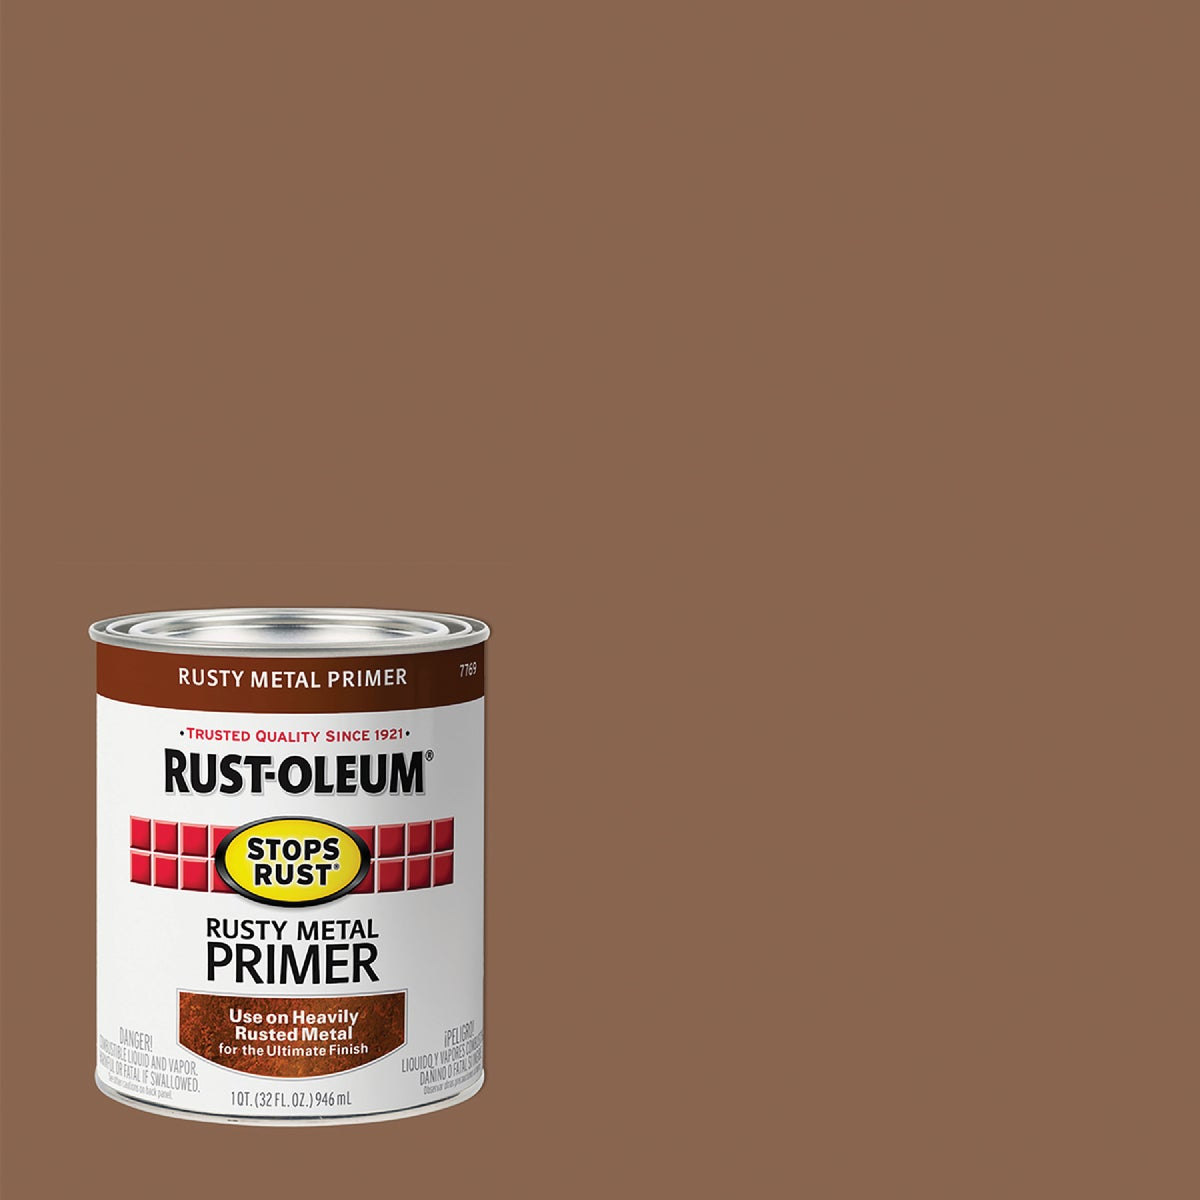 RED RUSTY METAL PRIMER